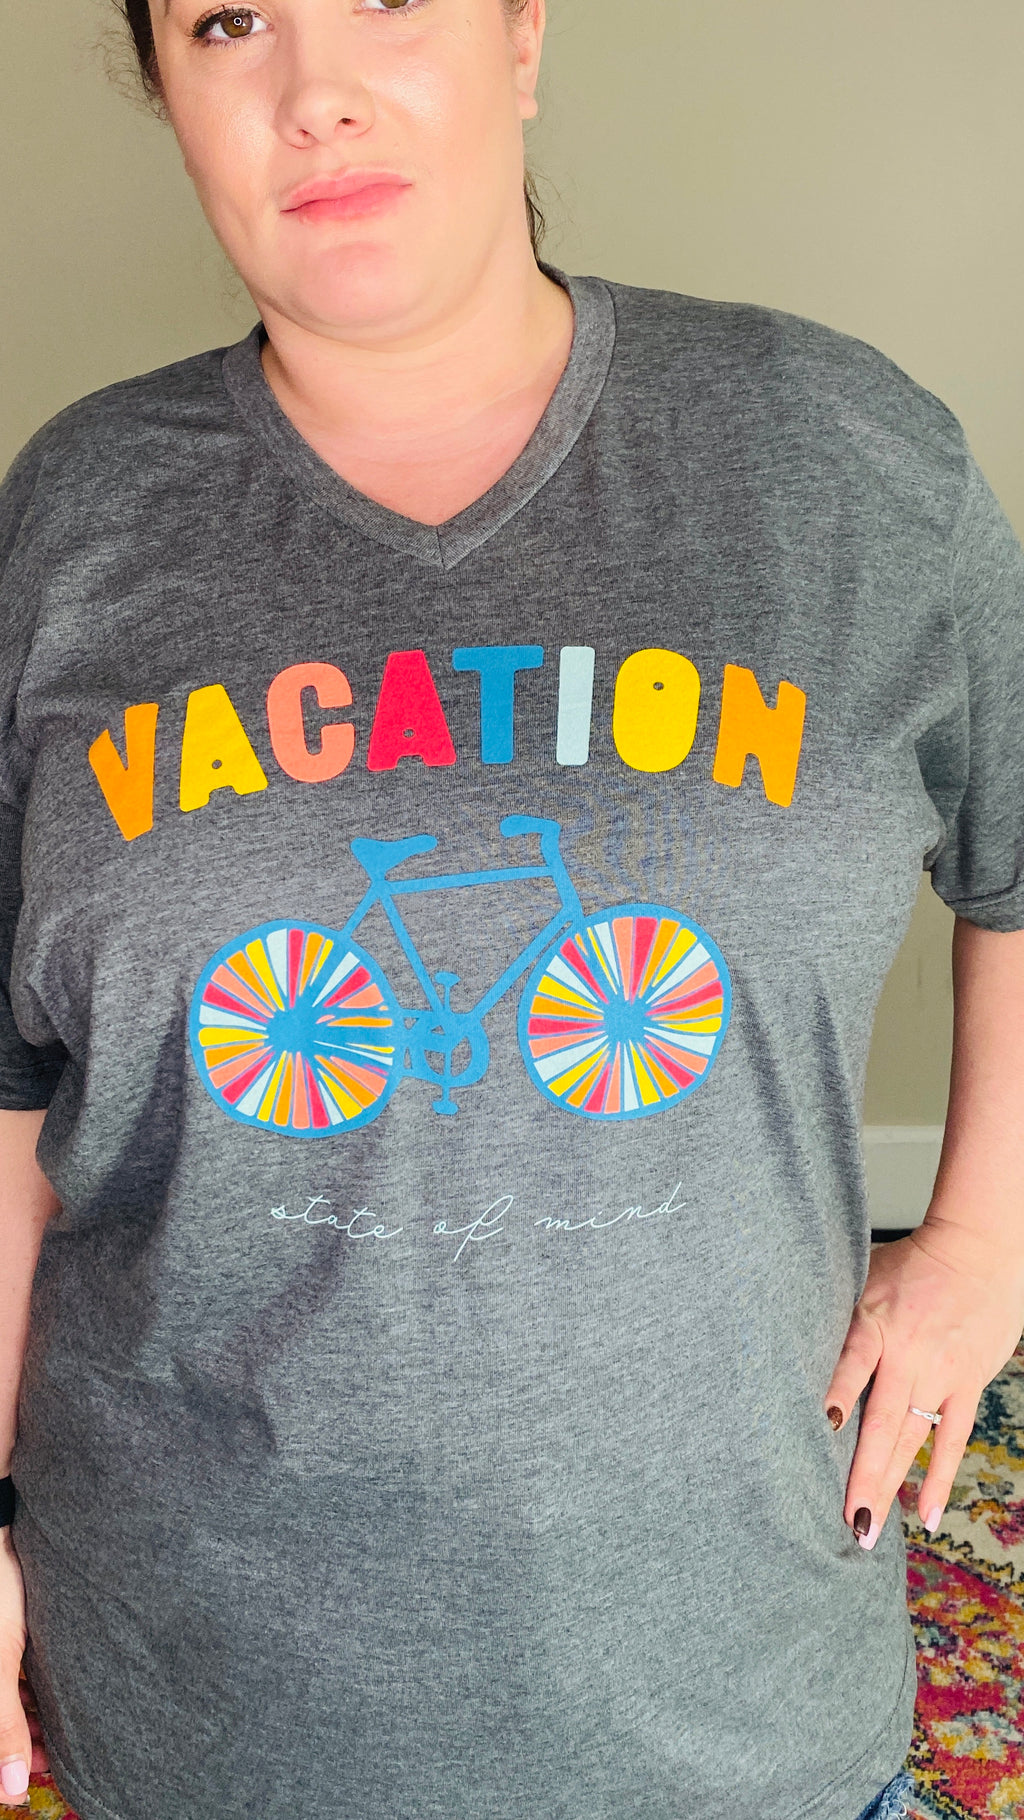 Vacation State Of Mind Graphic Tee